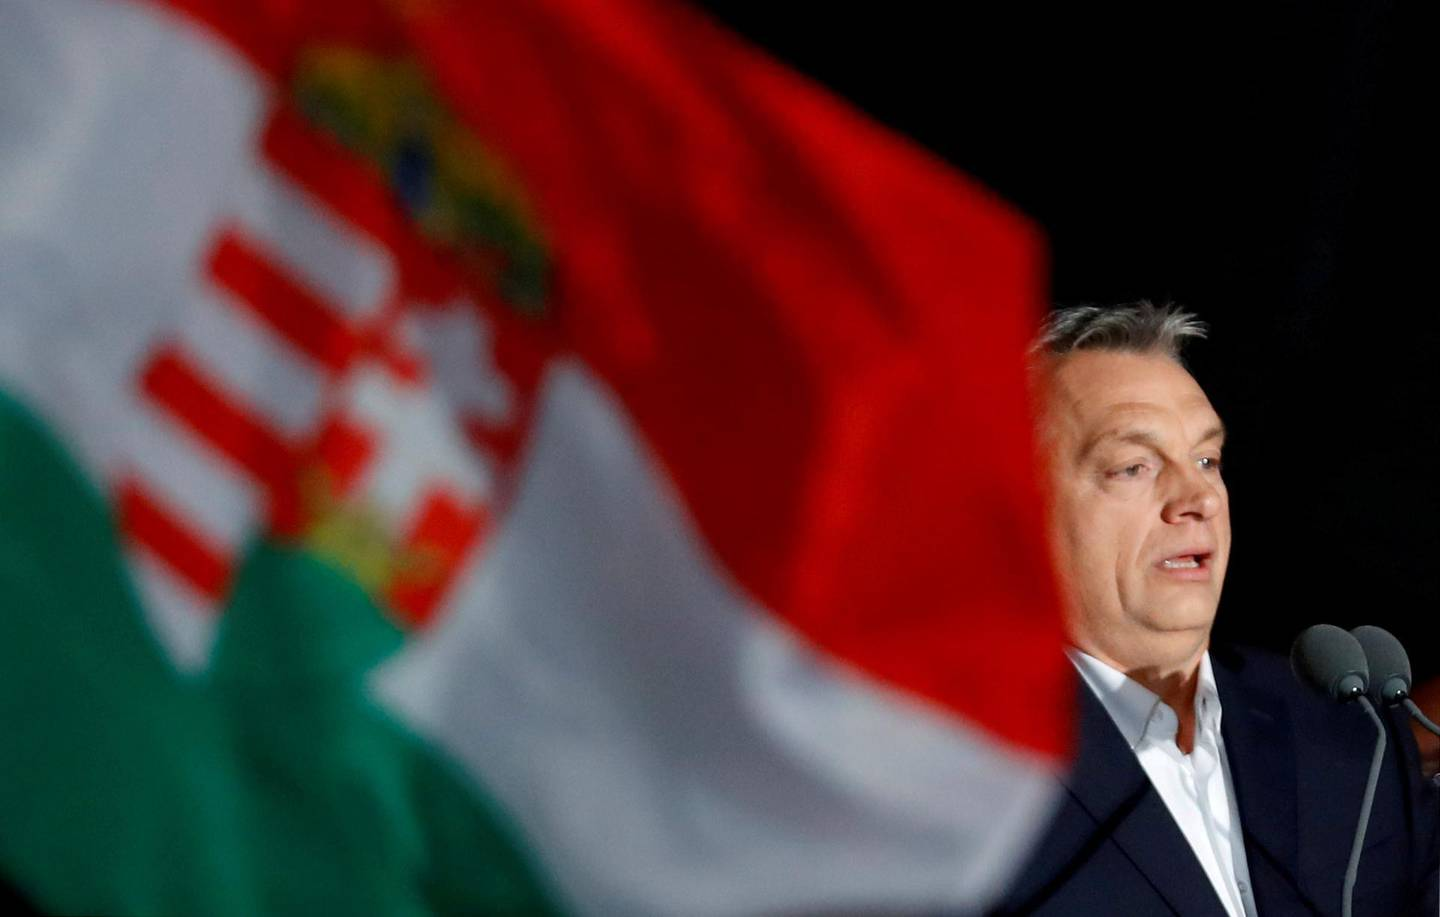 FILE PHOTO: FILE PHOTO: Hungarian Prime Minister Viktor Orban addresses the supporters after the announcement of the partial results of parliamentary election in Budapest, Hungary, April 8, 2018.REUTERS/Leonhard Foeger/File Photo